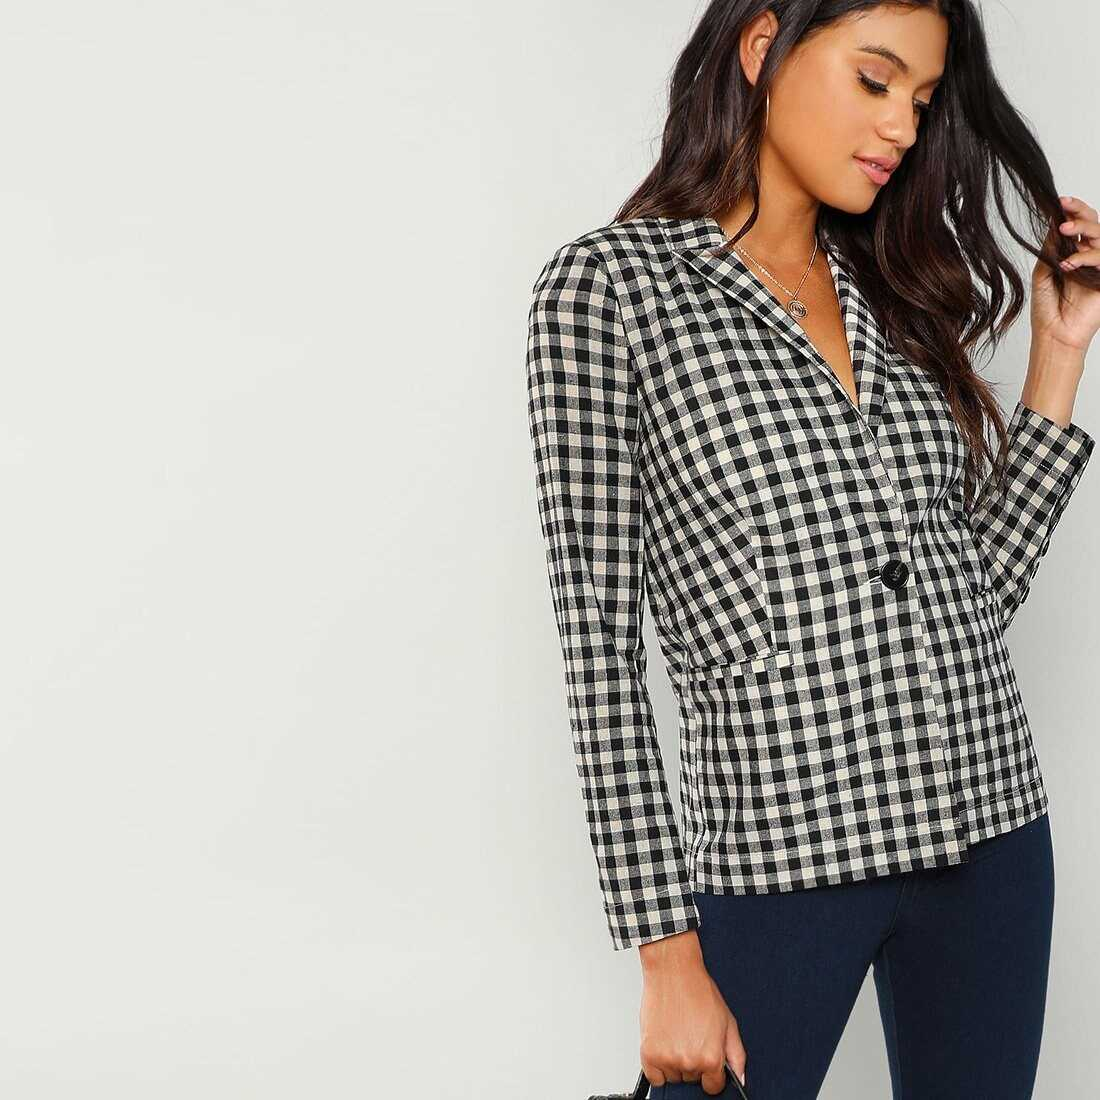 Notched Collar Button Up Blazer in Black and White by ROMWE on GOOFASH